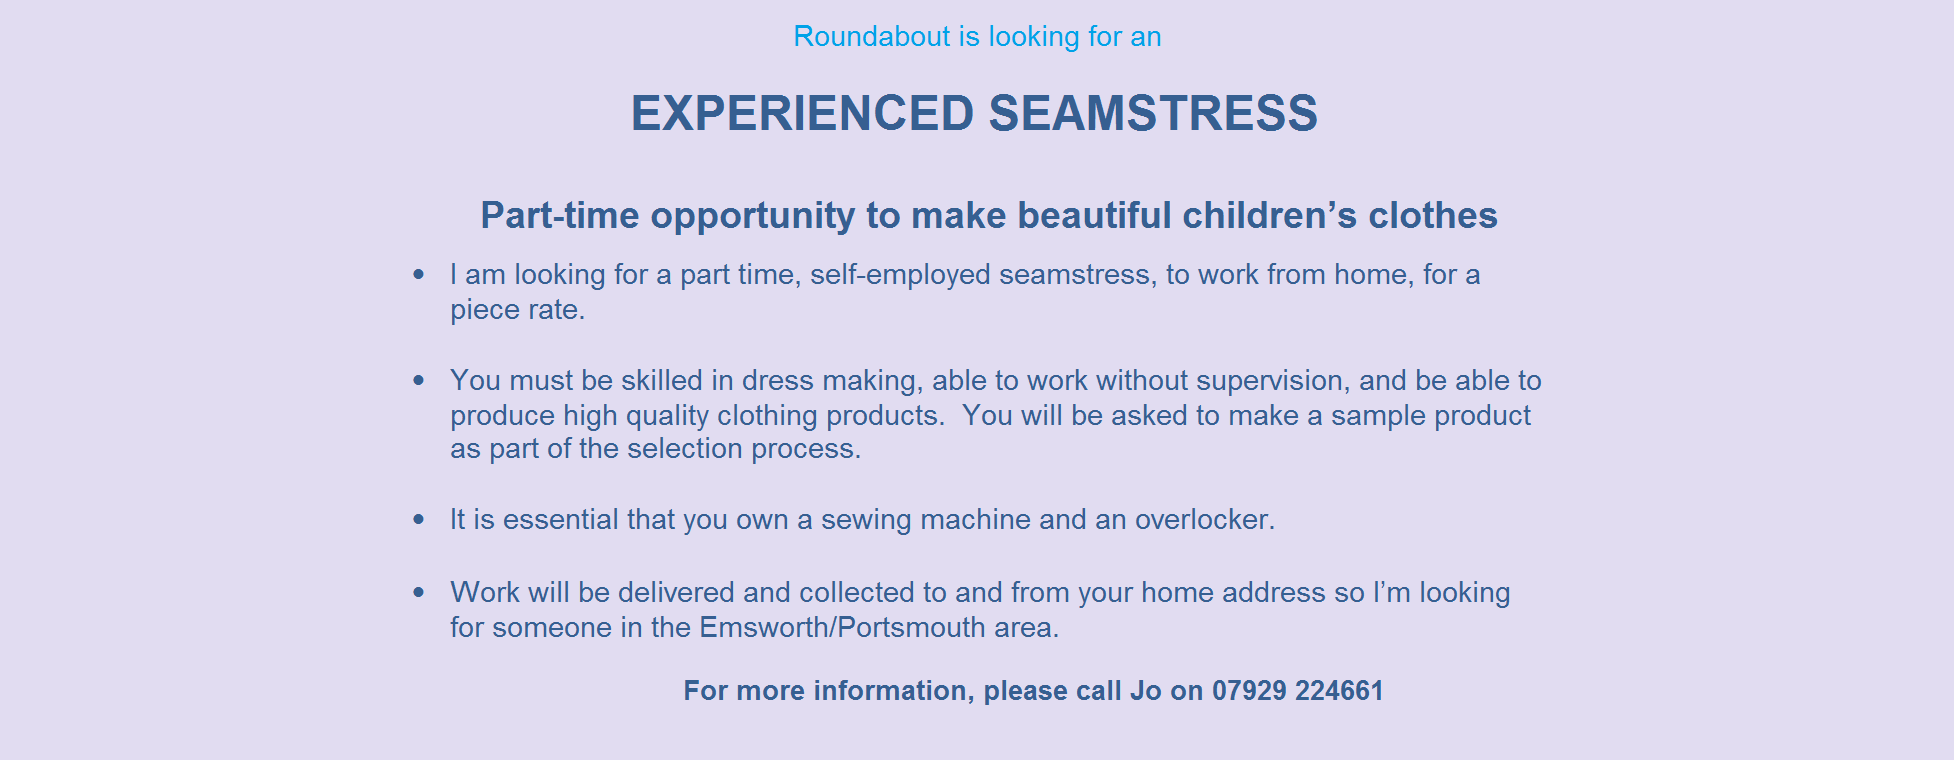 work roundabout roundabout childrenswear work roundabout